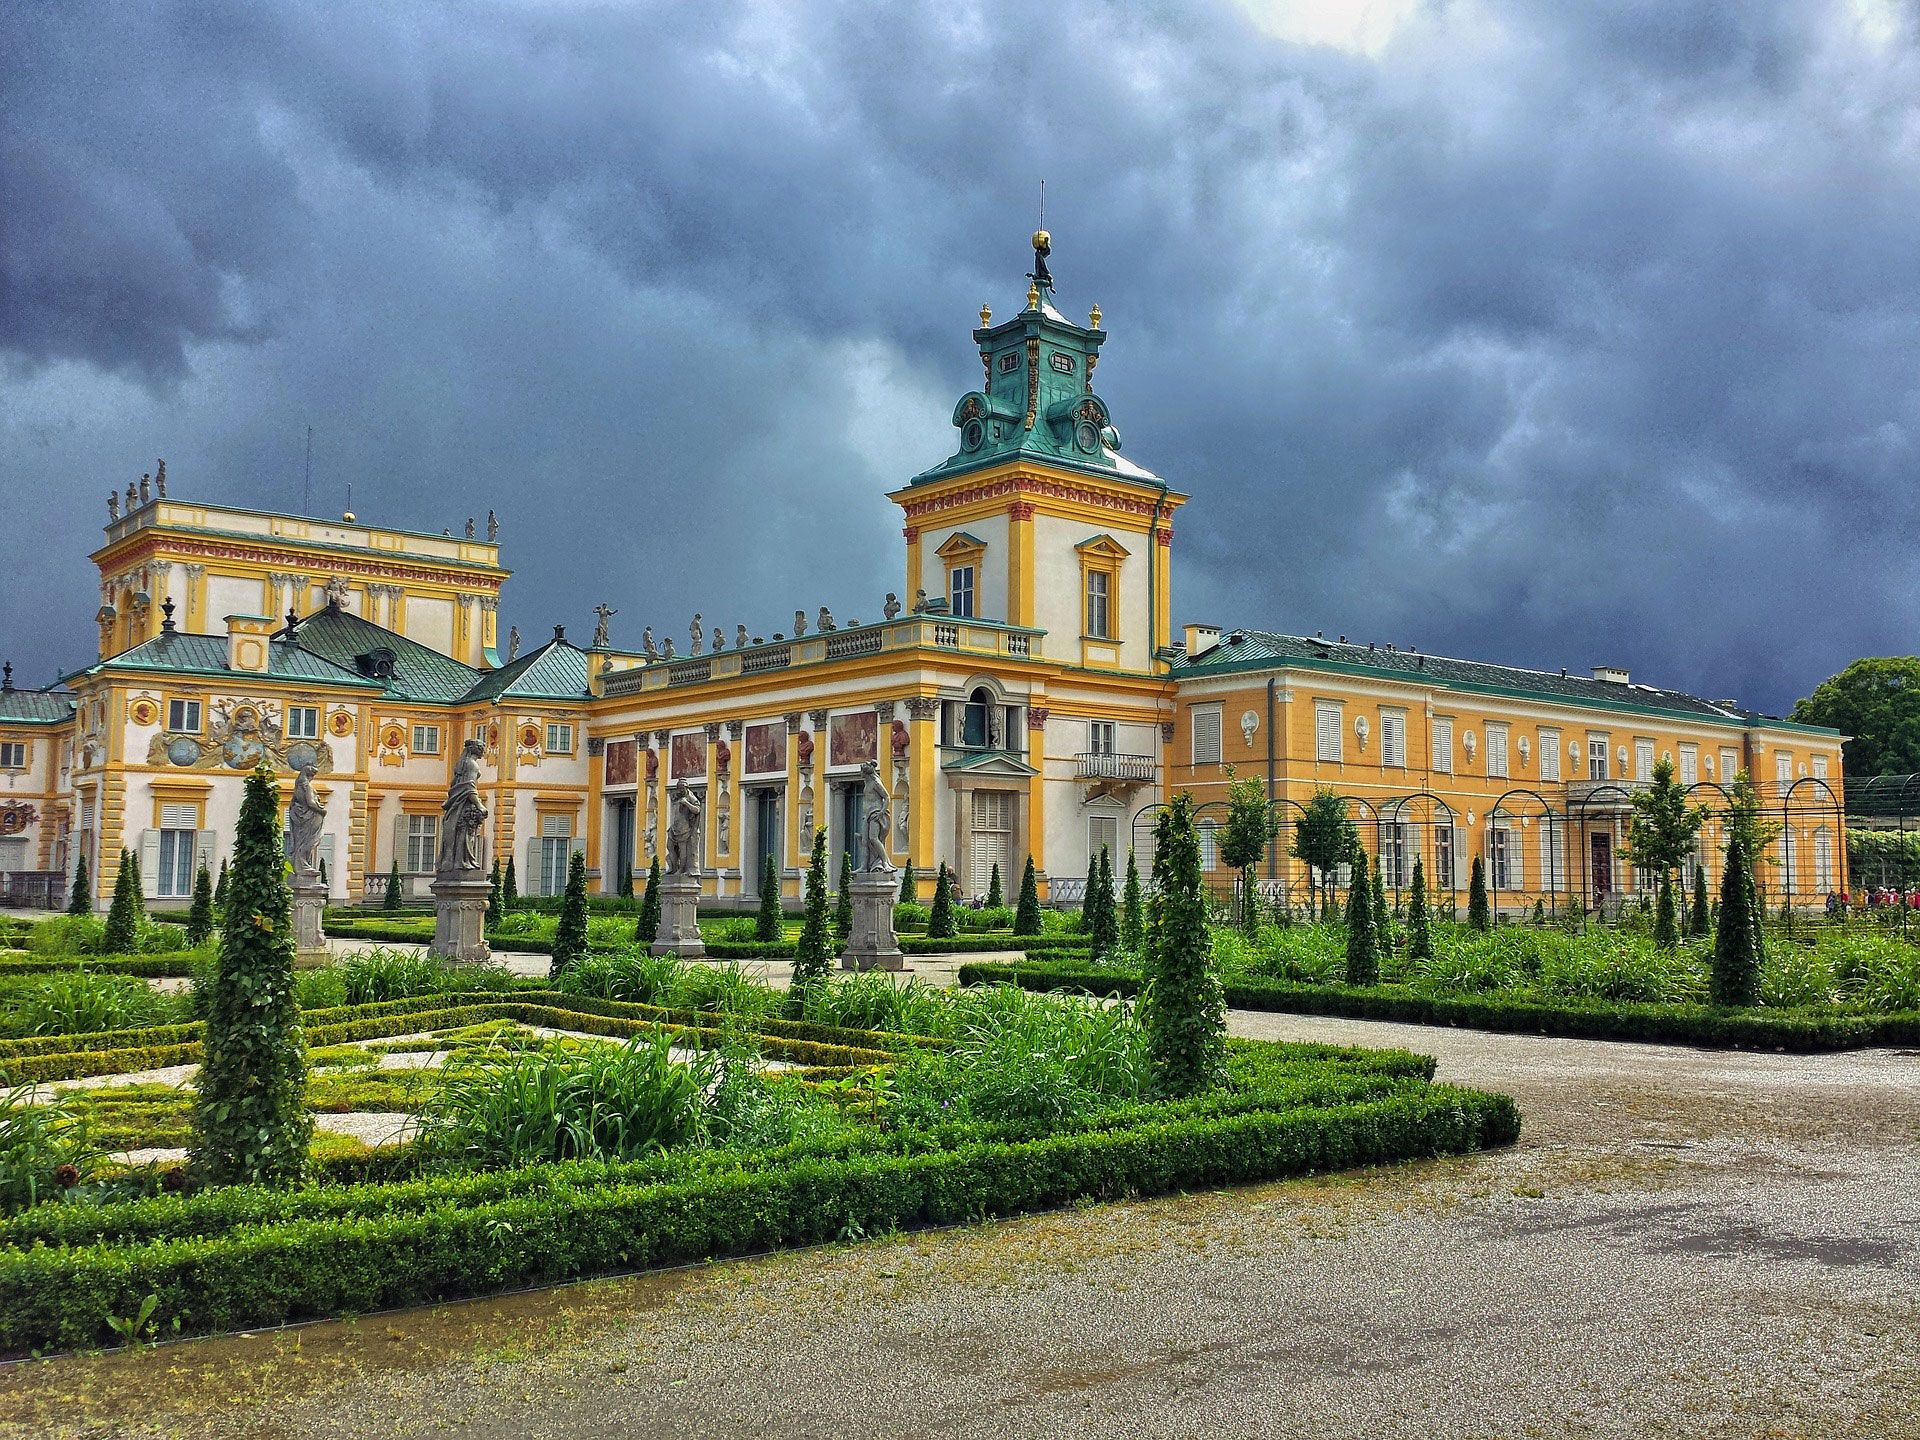 Works previously owned by the Branicki family were recovered by the Polish government and placed in Wilanow Palace, which had been previously seized from the family by the government